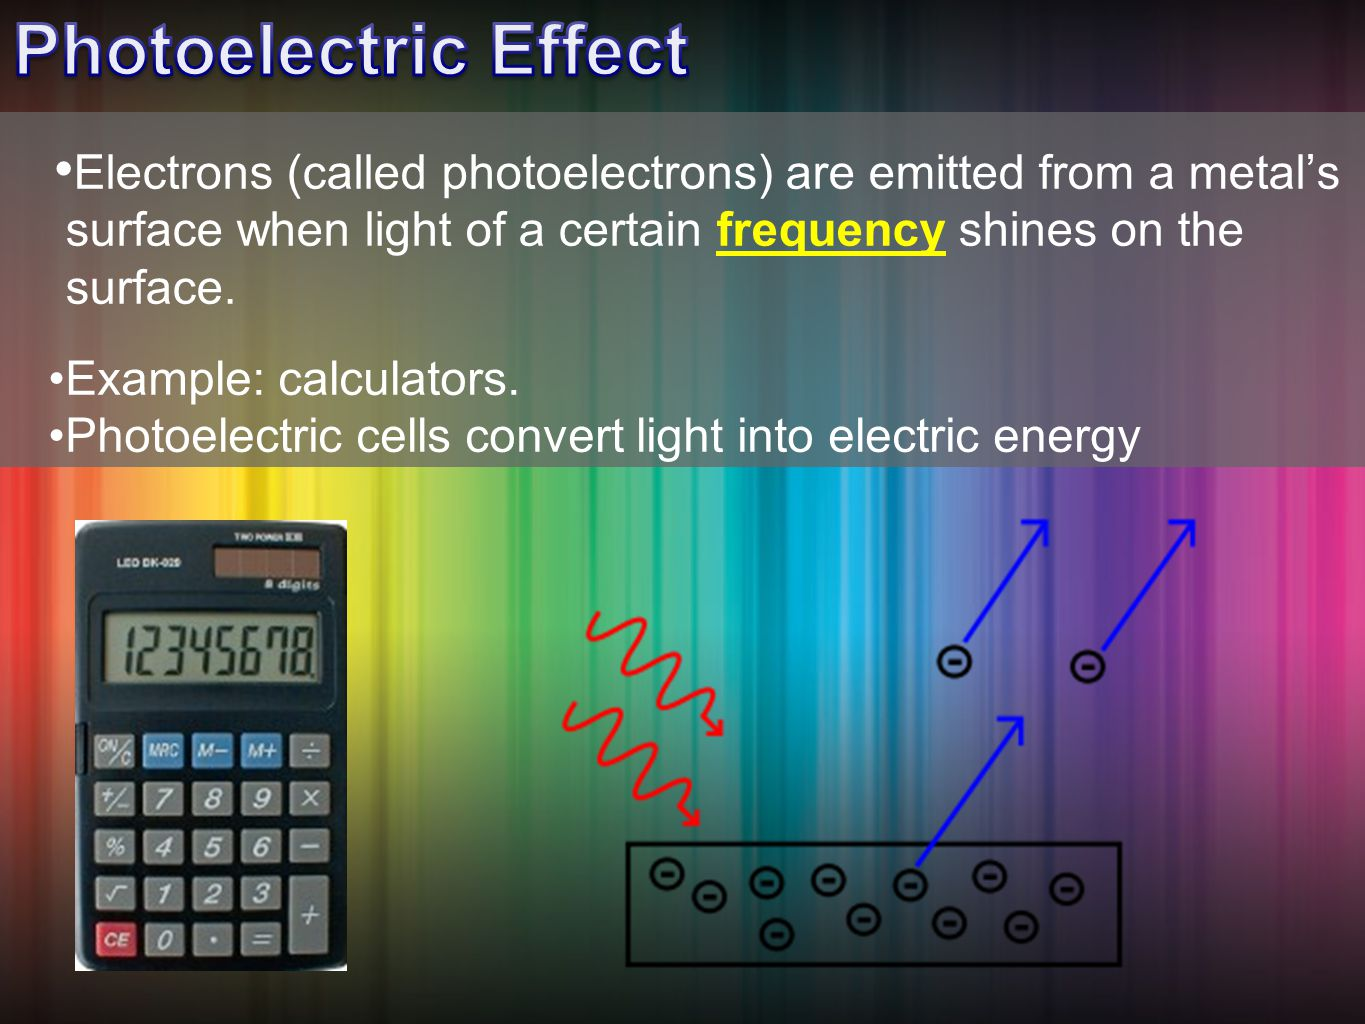 Electrons (called photoelectrons) are emitted from a metal's surface when light of a certain frequency shines on the surface.